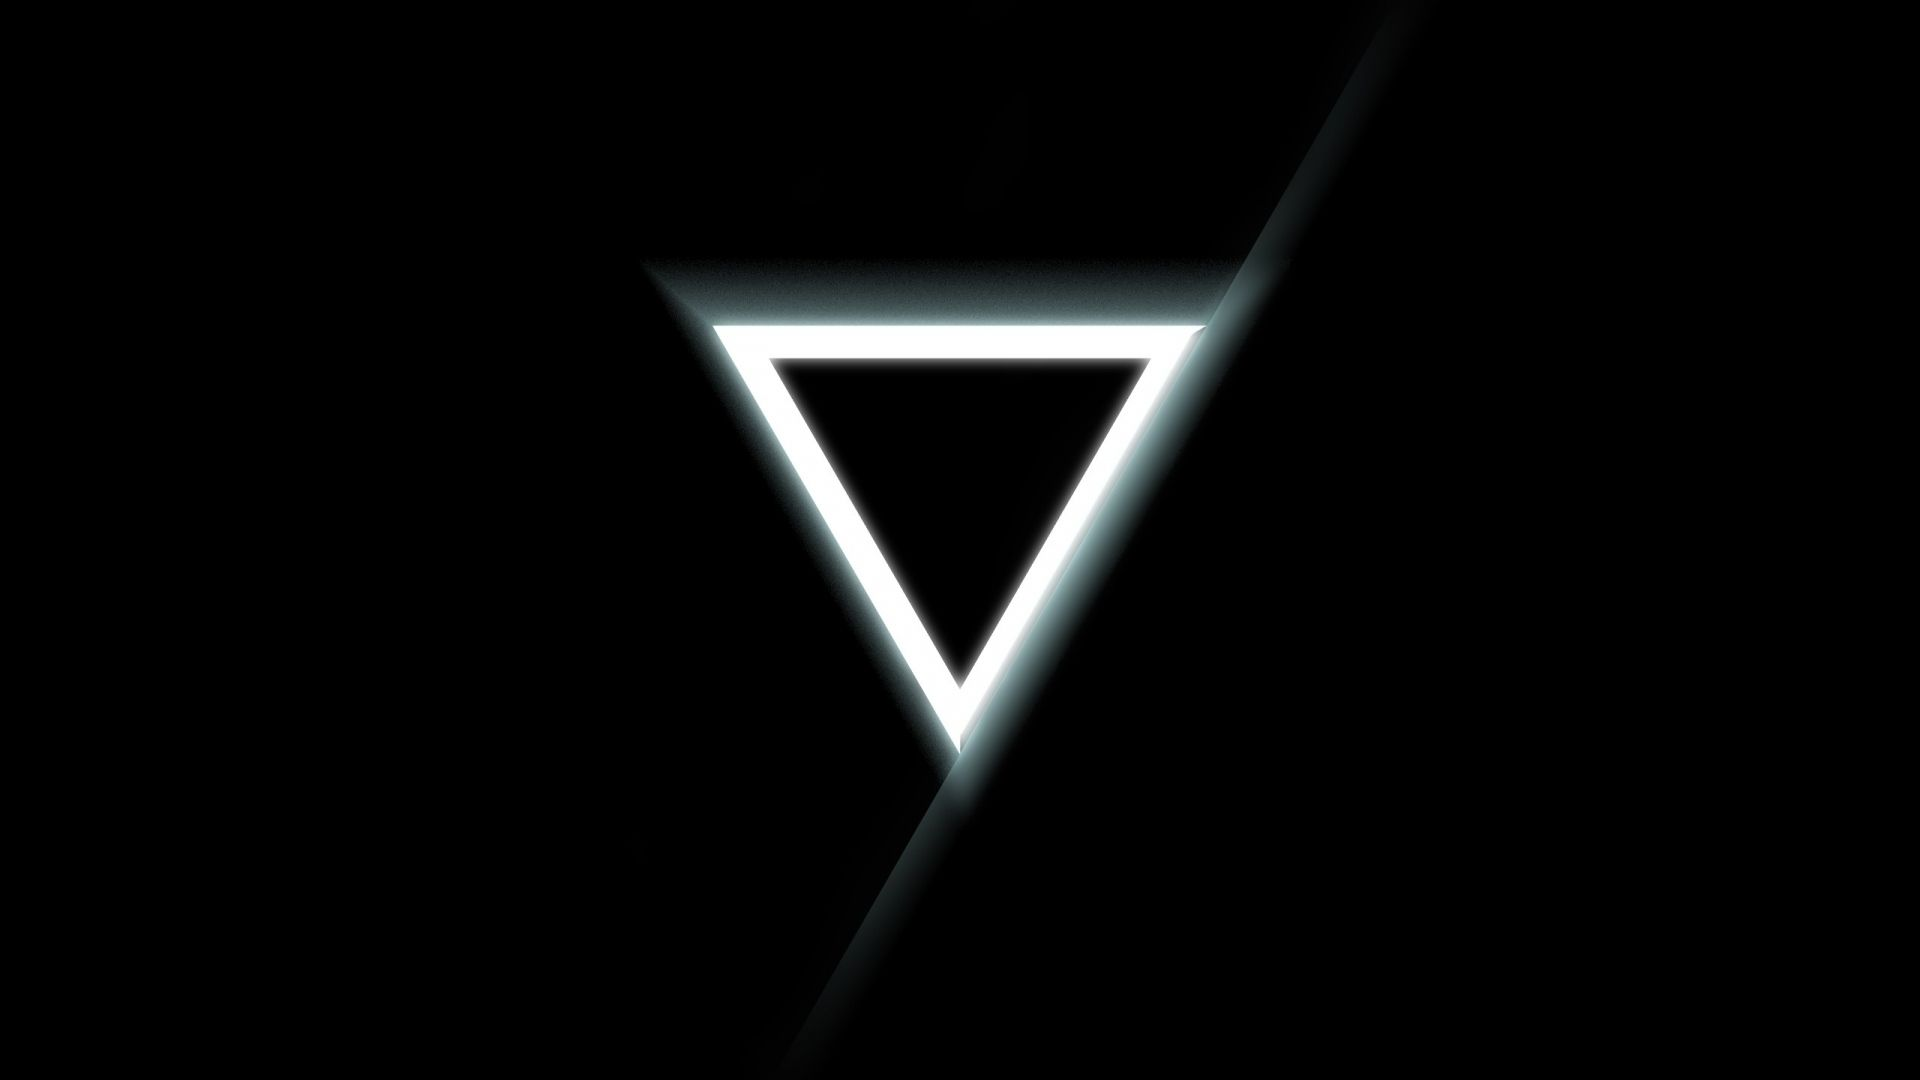 Black And White Triangle Wallpapers Top Free Black And White